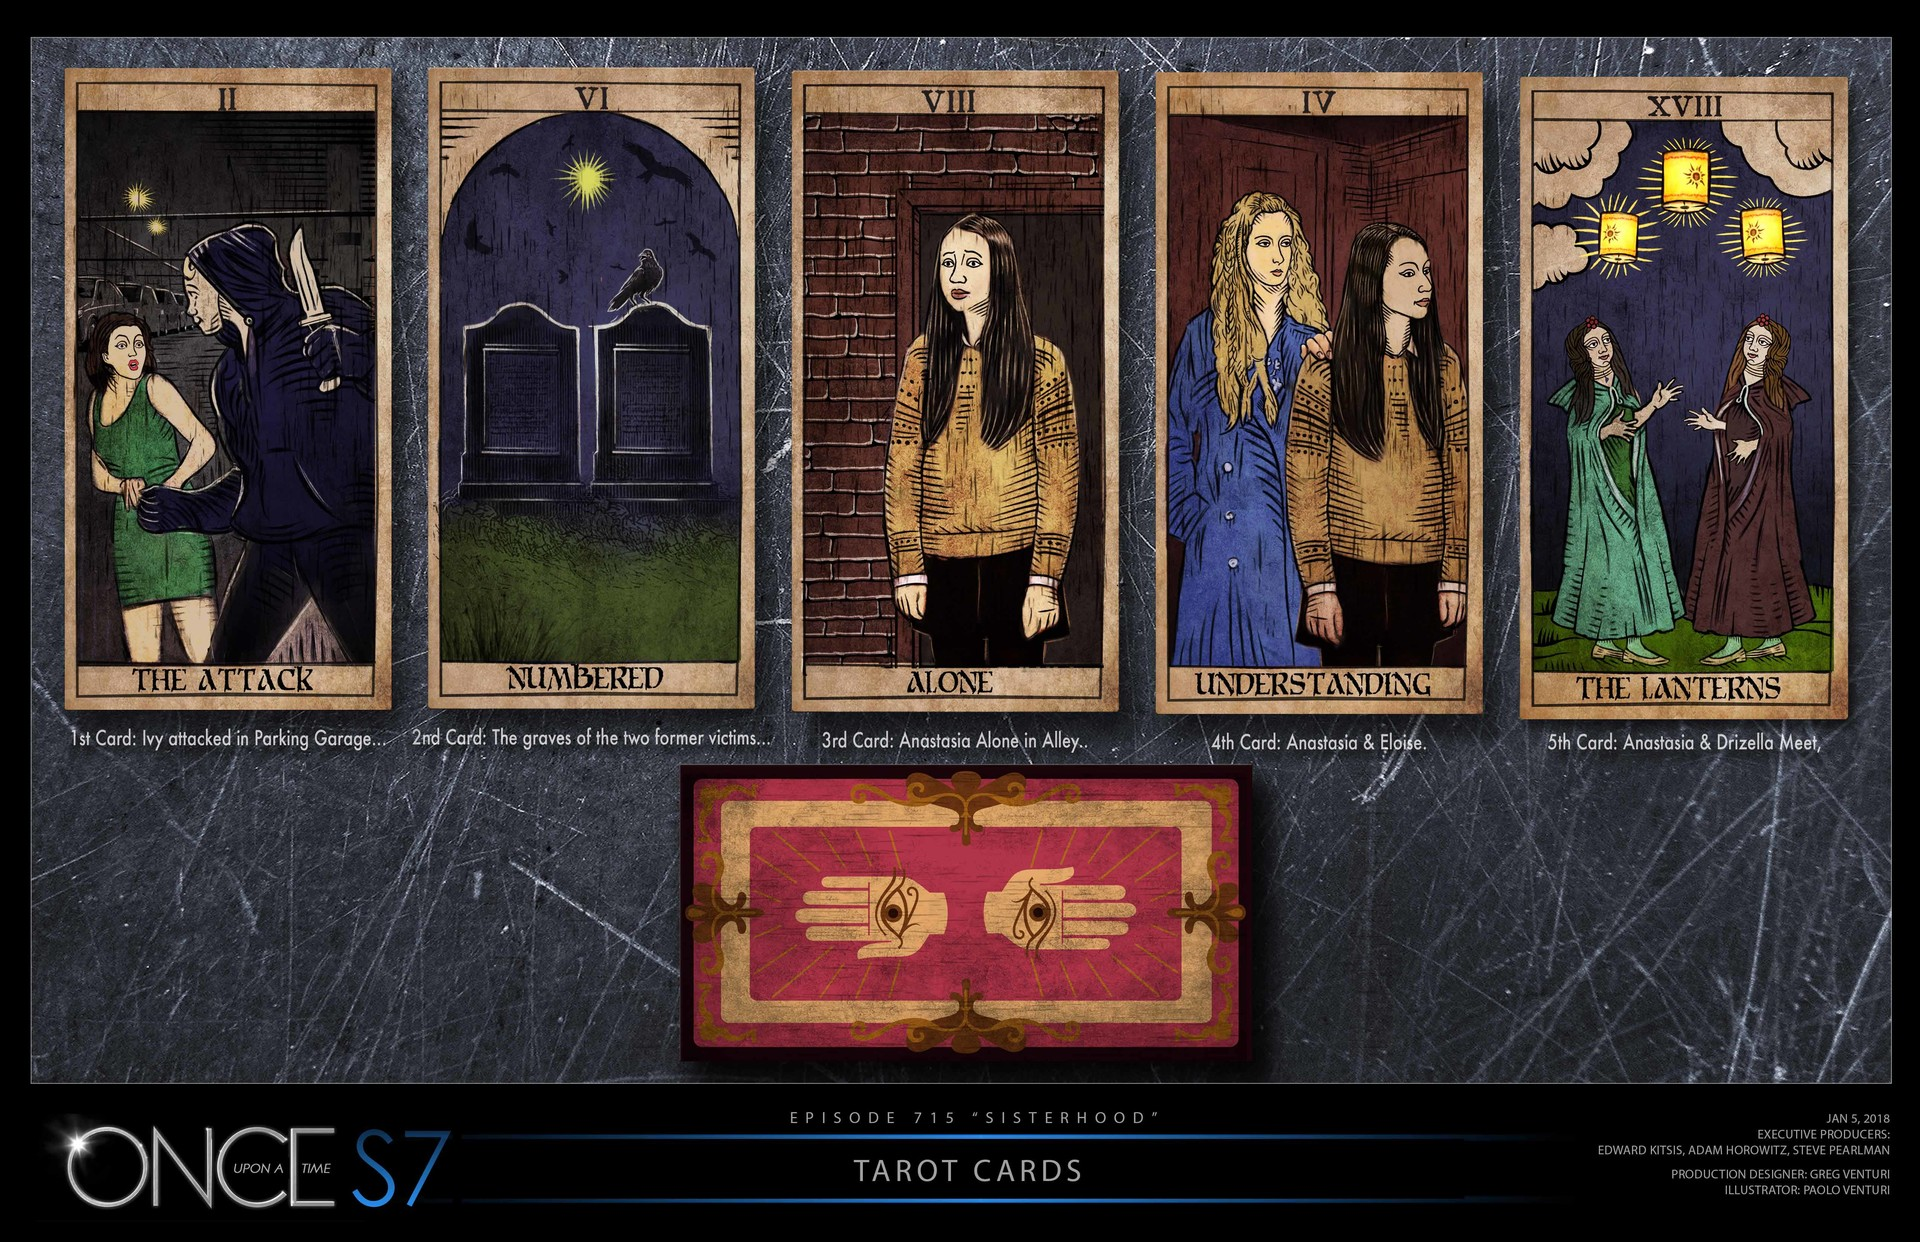 Some Tarot Cards for  ABC's Once Upon a Time Season 4